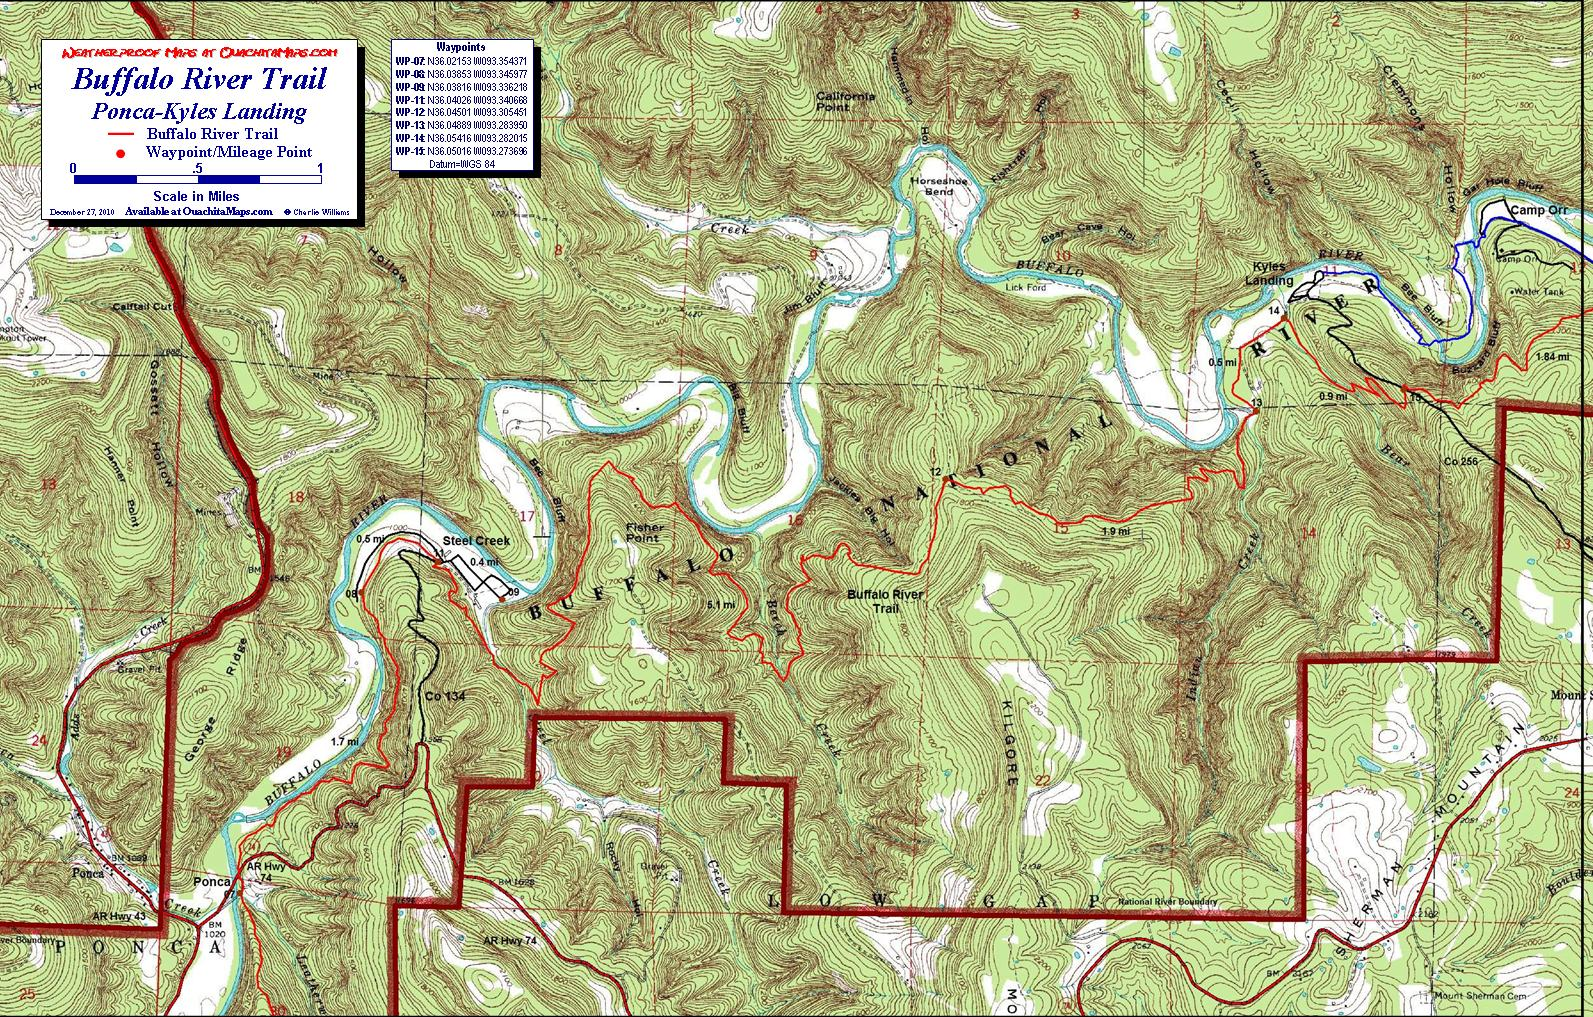 ponca to kyles landing hike. buffalo river trail western section free detailed topo map